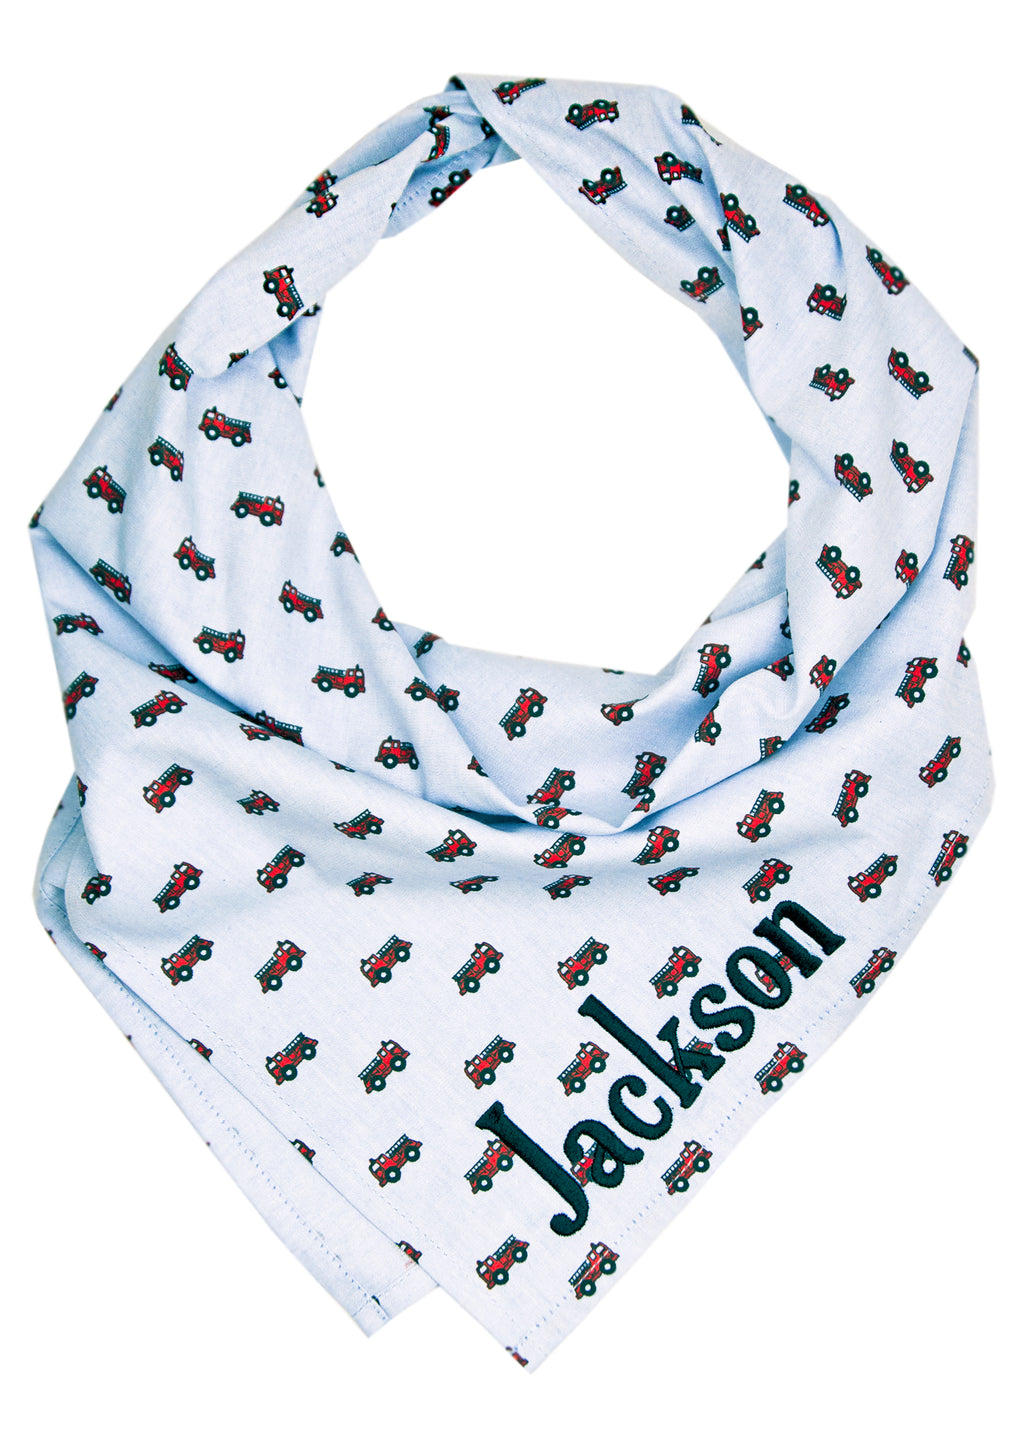 Station 10 Dog Bandana